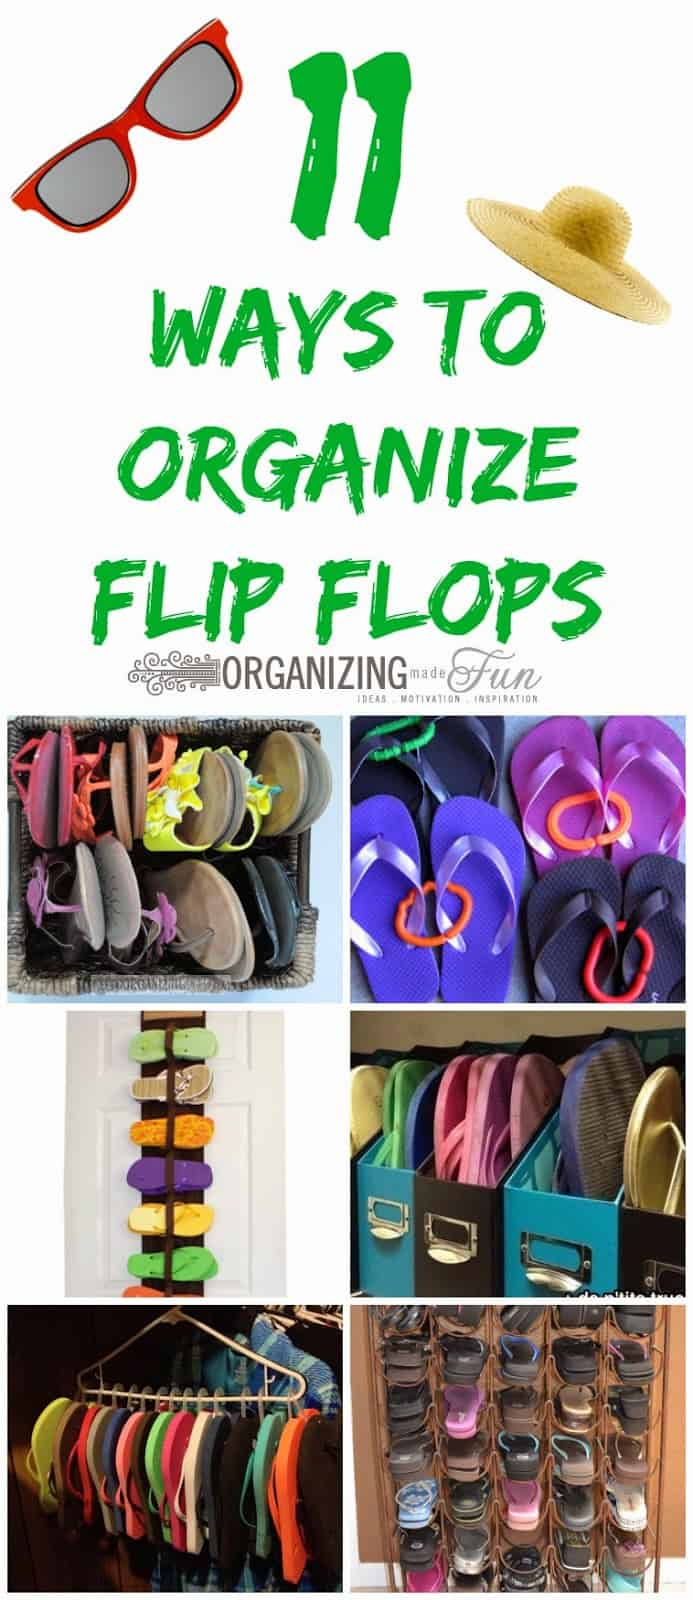 11 Ways to Organize Flip Flops